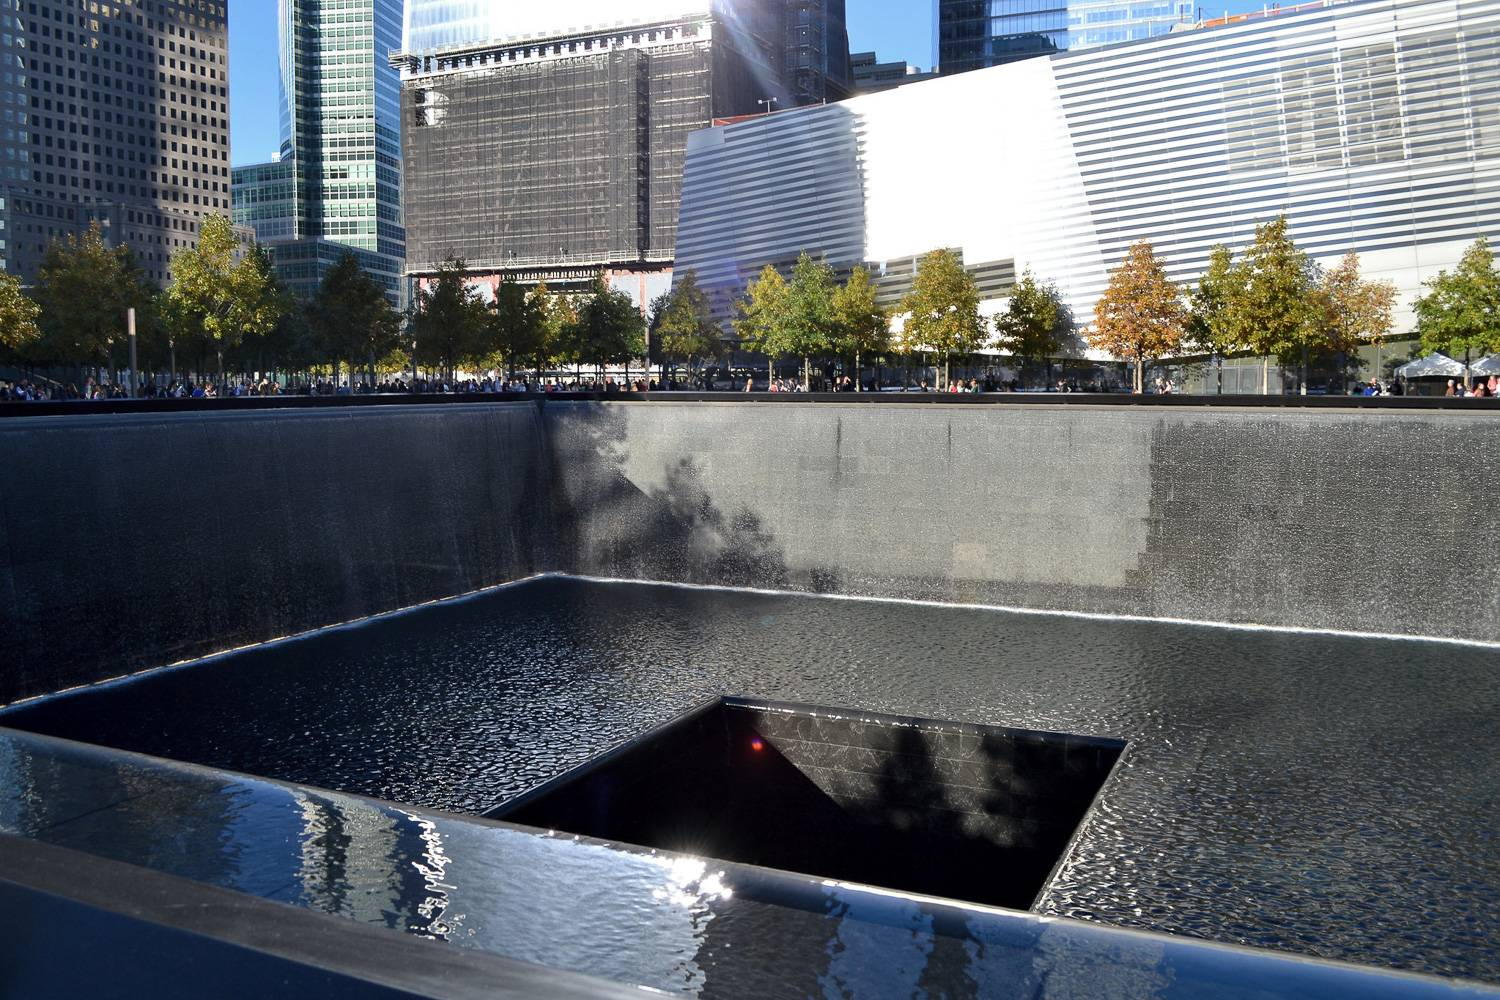 Imagen de una de las piscinas reflectantes en el National September 11 Memorial.